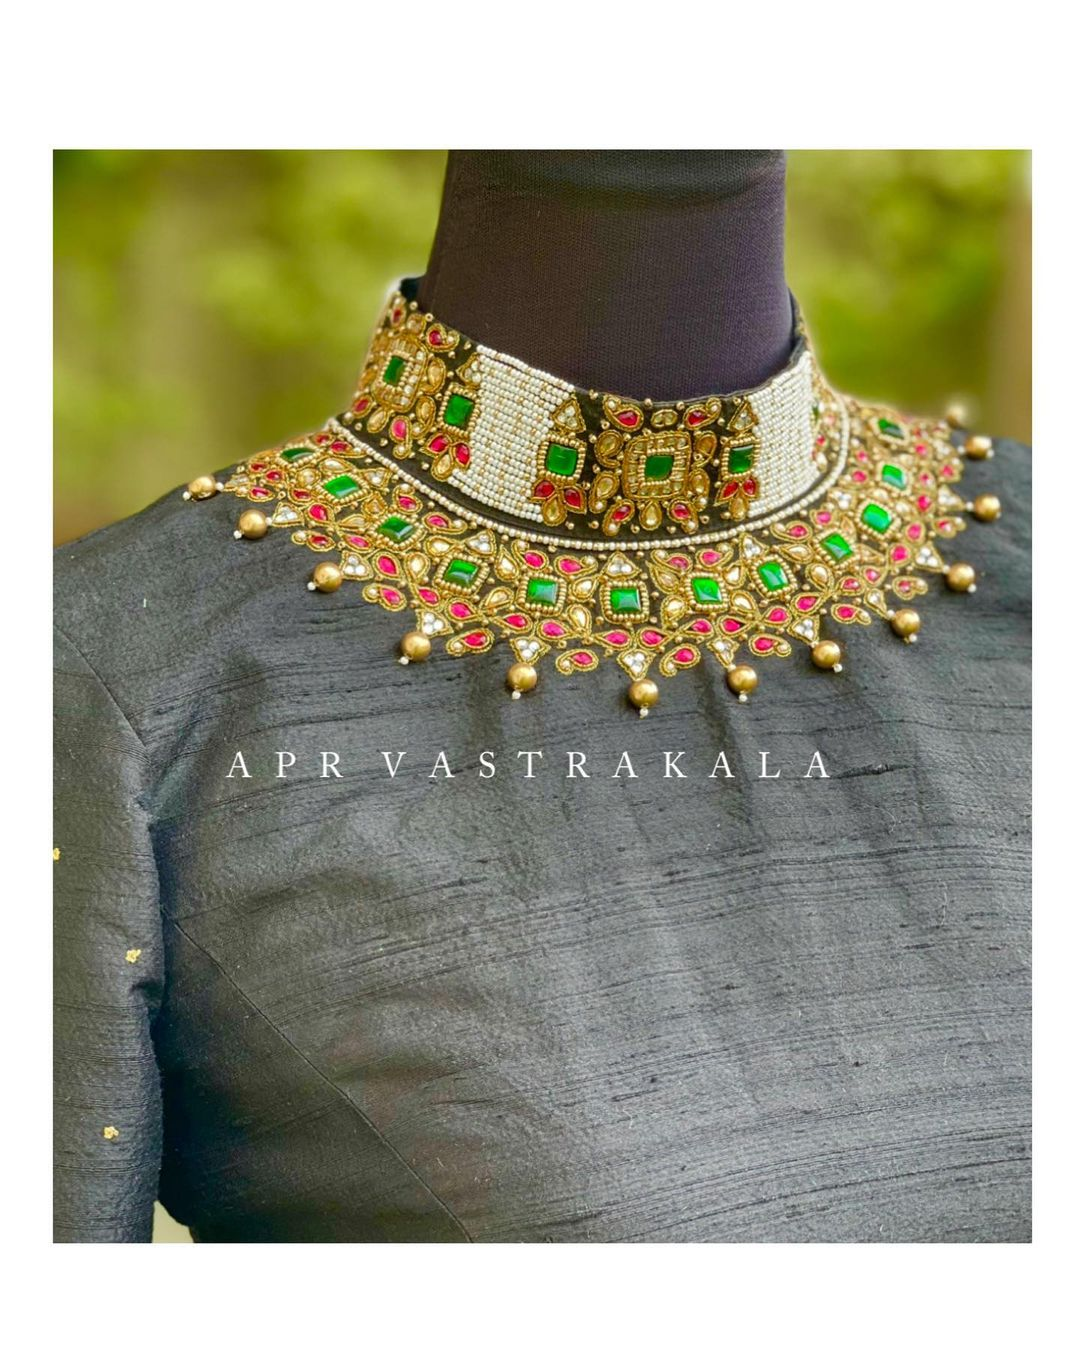 Design is a way of thinking...!! Gorgeous black raw silk high neck blouse with choker design hand embroidery emerald work on neckline and sleeves.  Designer Necklace work- Pearls n emeralds Apr vastrakala.  2021-05-16